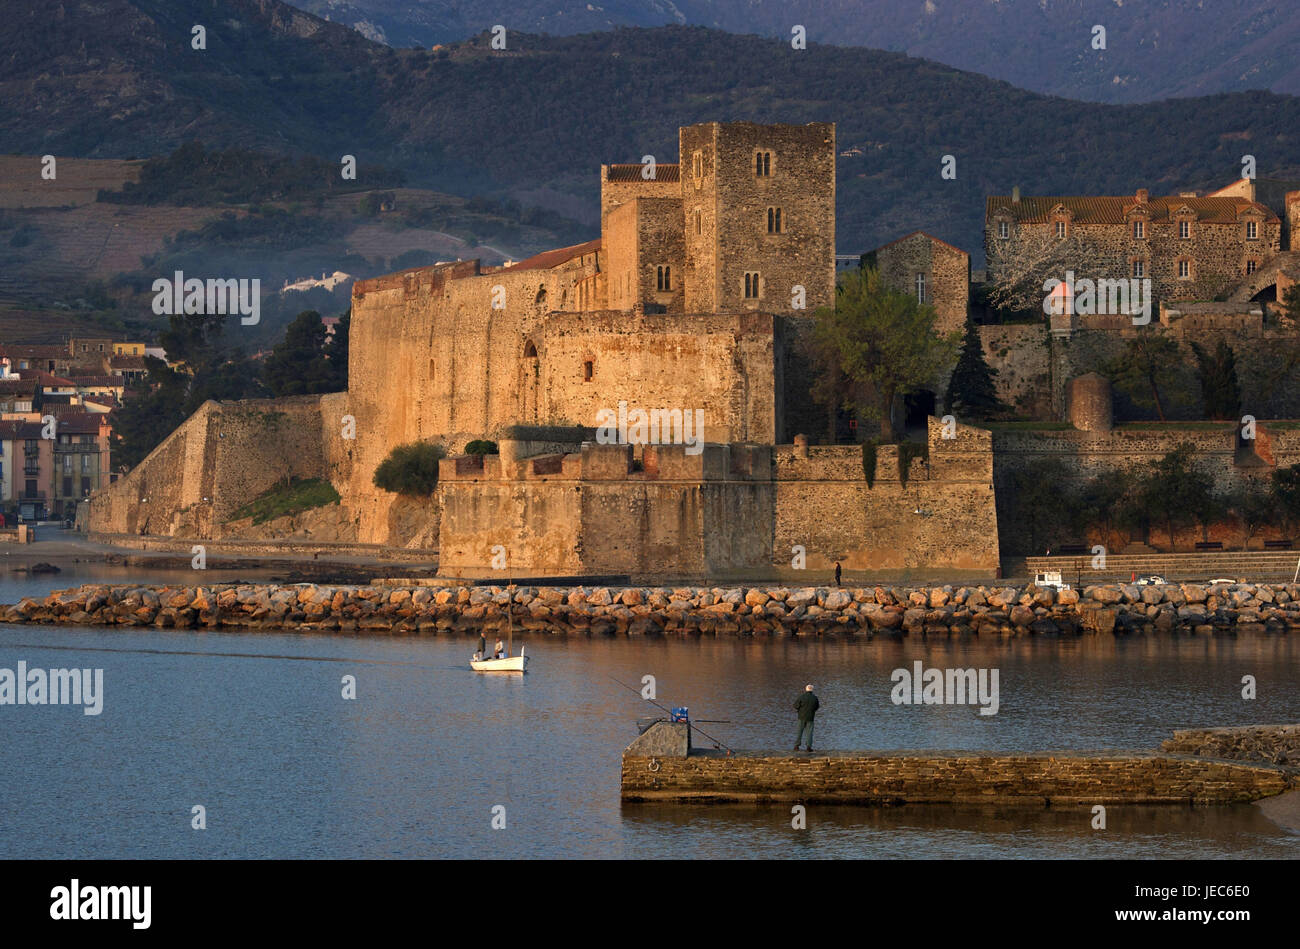 Europe, France, Collioure, view at the château royal, Europe, France, Languedoc-Roussillon, Collioure, Département - Stock Image